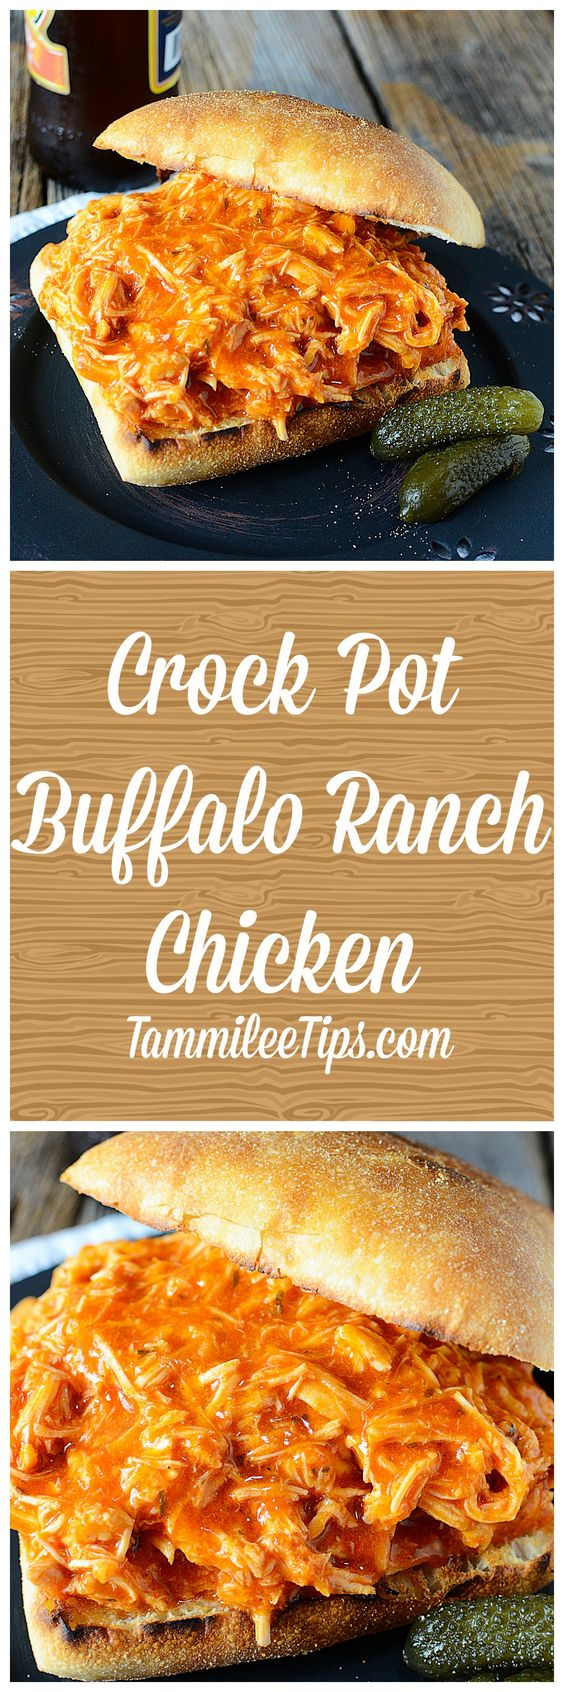 Simple Crock Pot Spicy Buffalo Ranch Chicken Sandwich Recipe! Only 3 ingredients needed to make this recipe. Perfect for Super Bowl or any day of the week. This easy slow cooker recipe is a family favorite!: